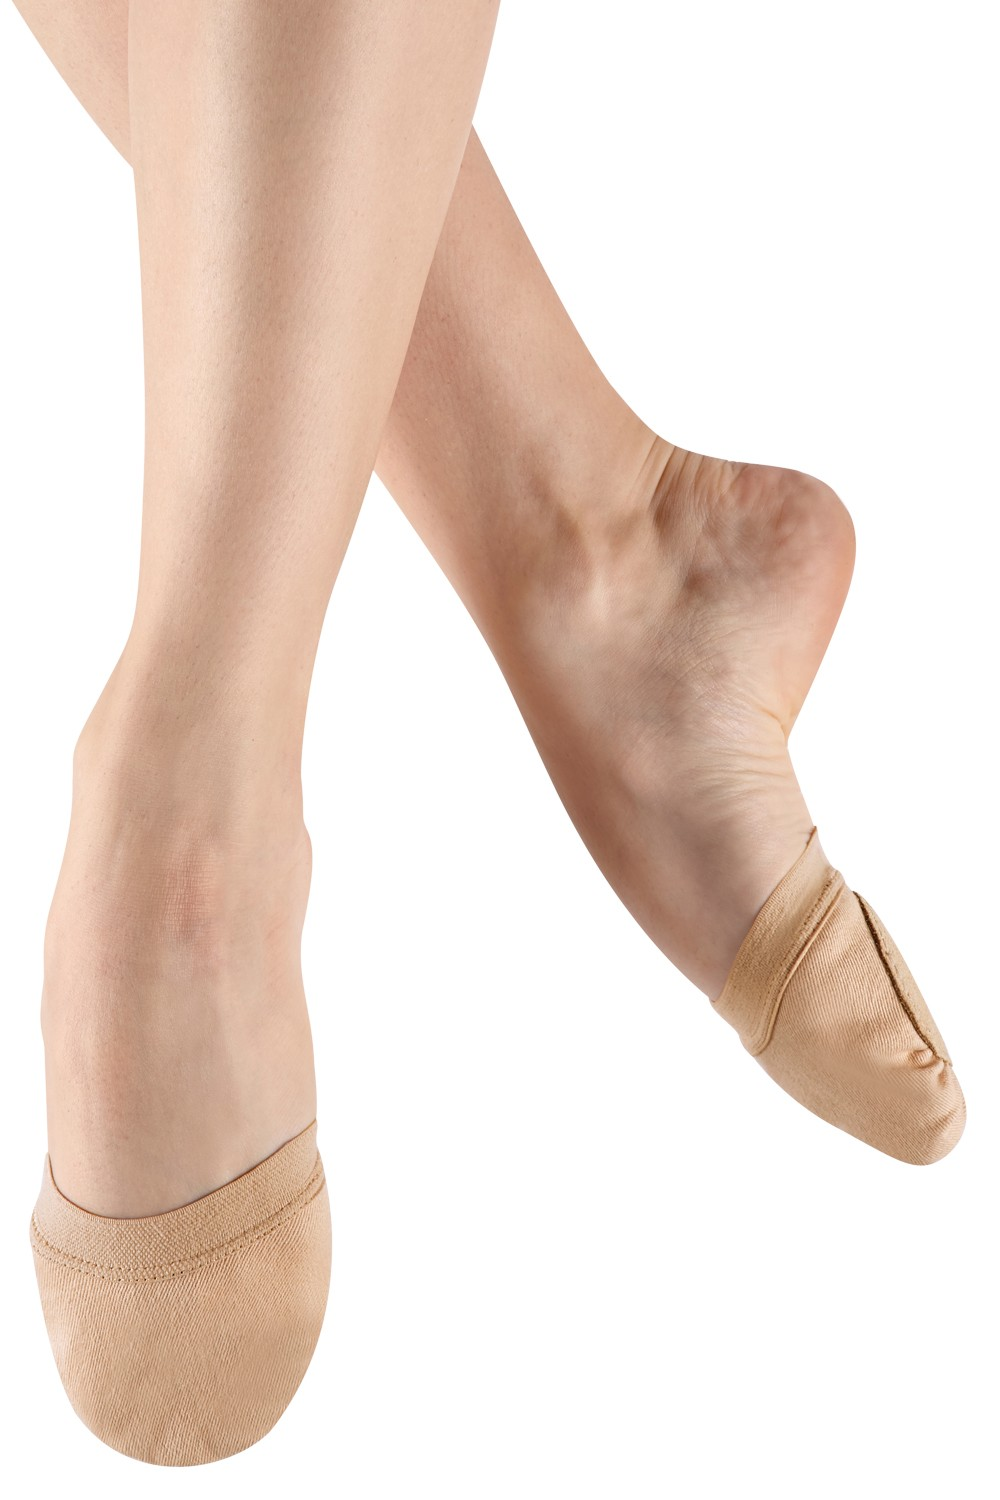 Spin- Narrow Width Women's Contemporary Dance Shoes